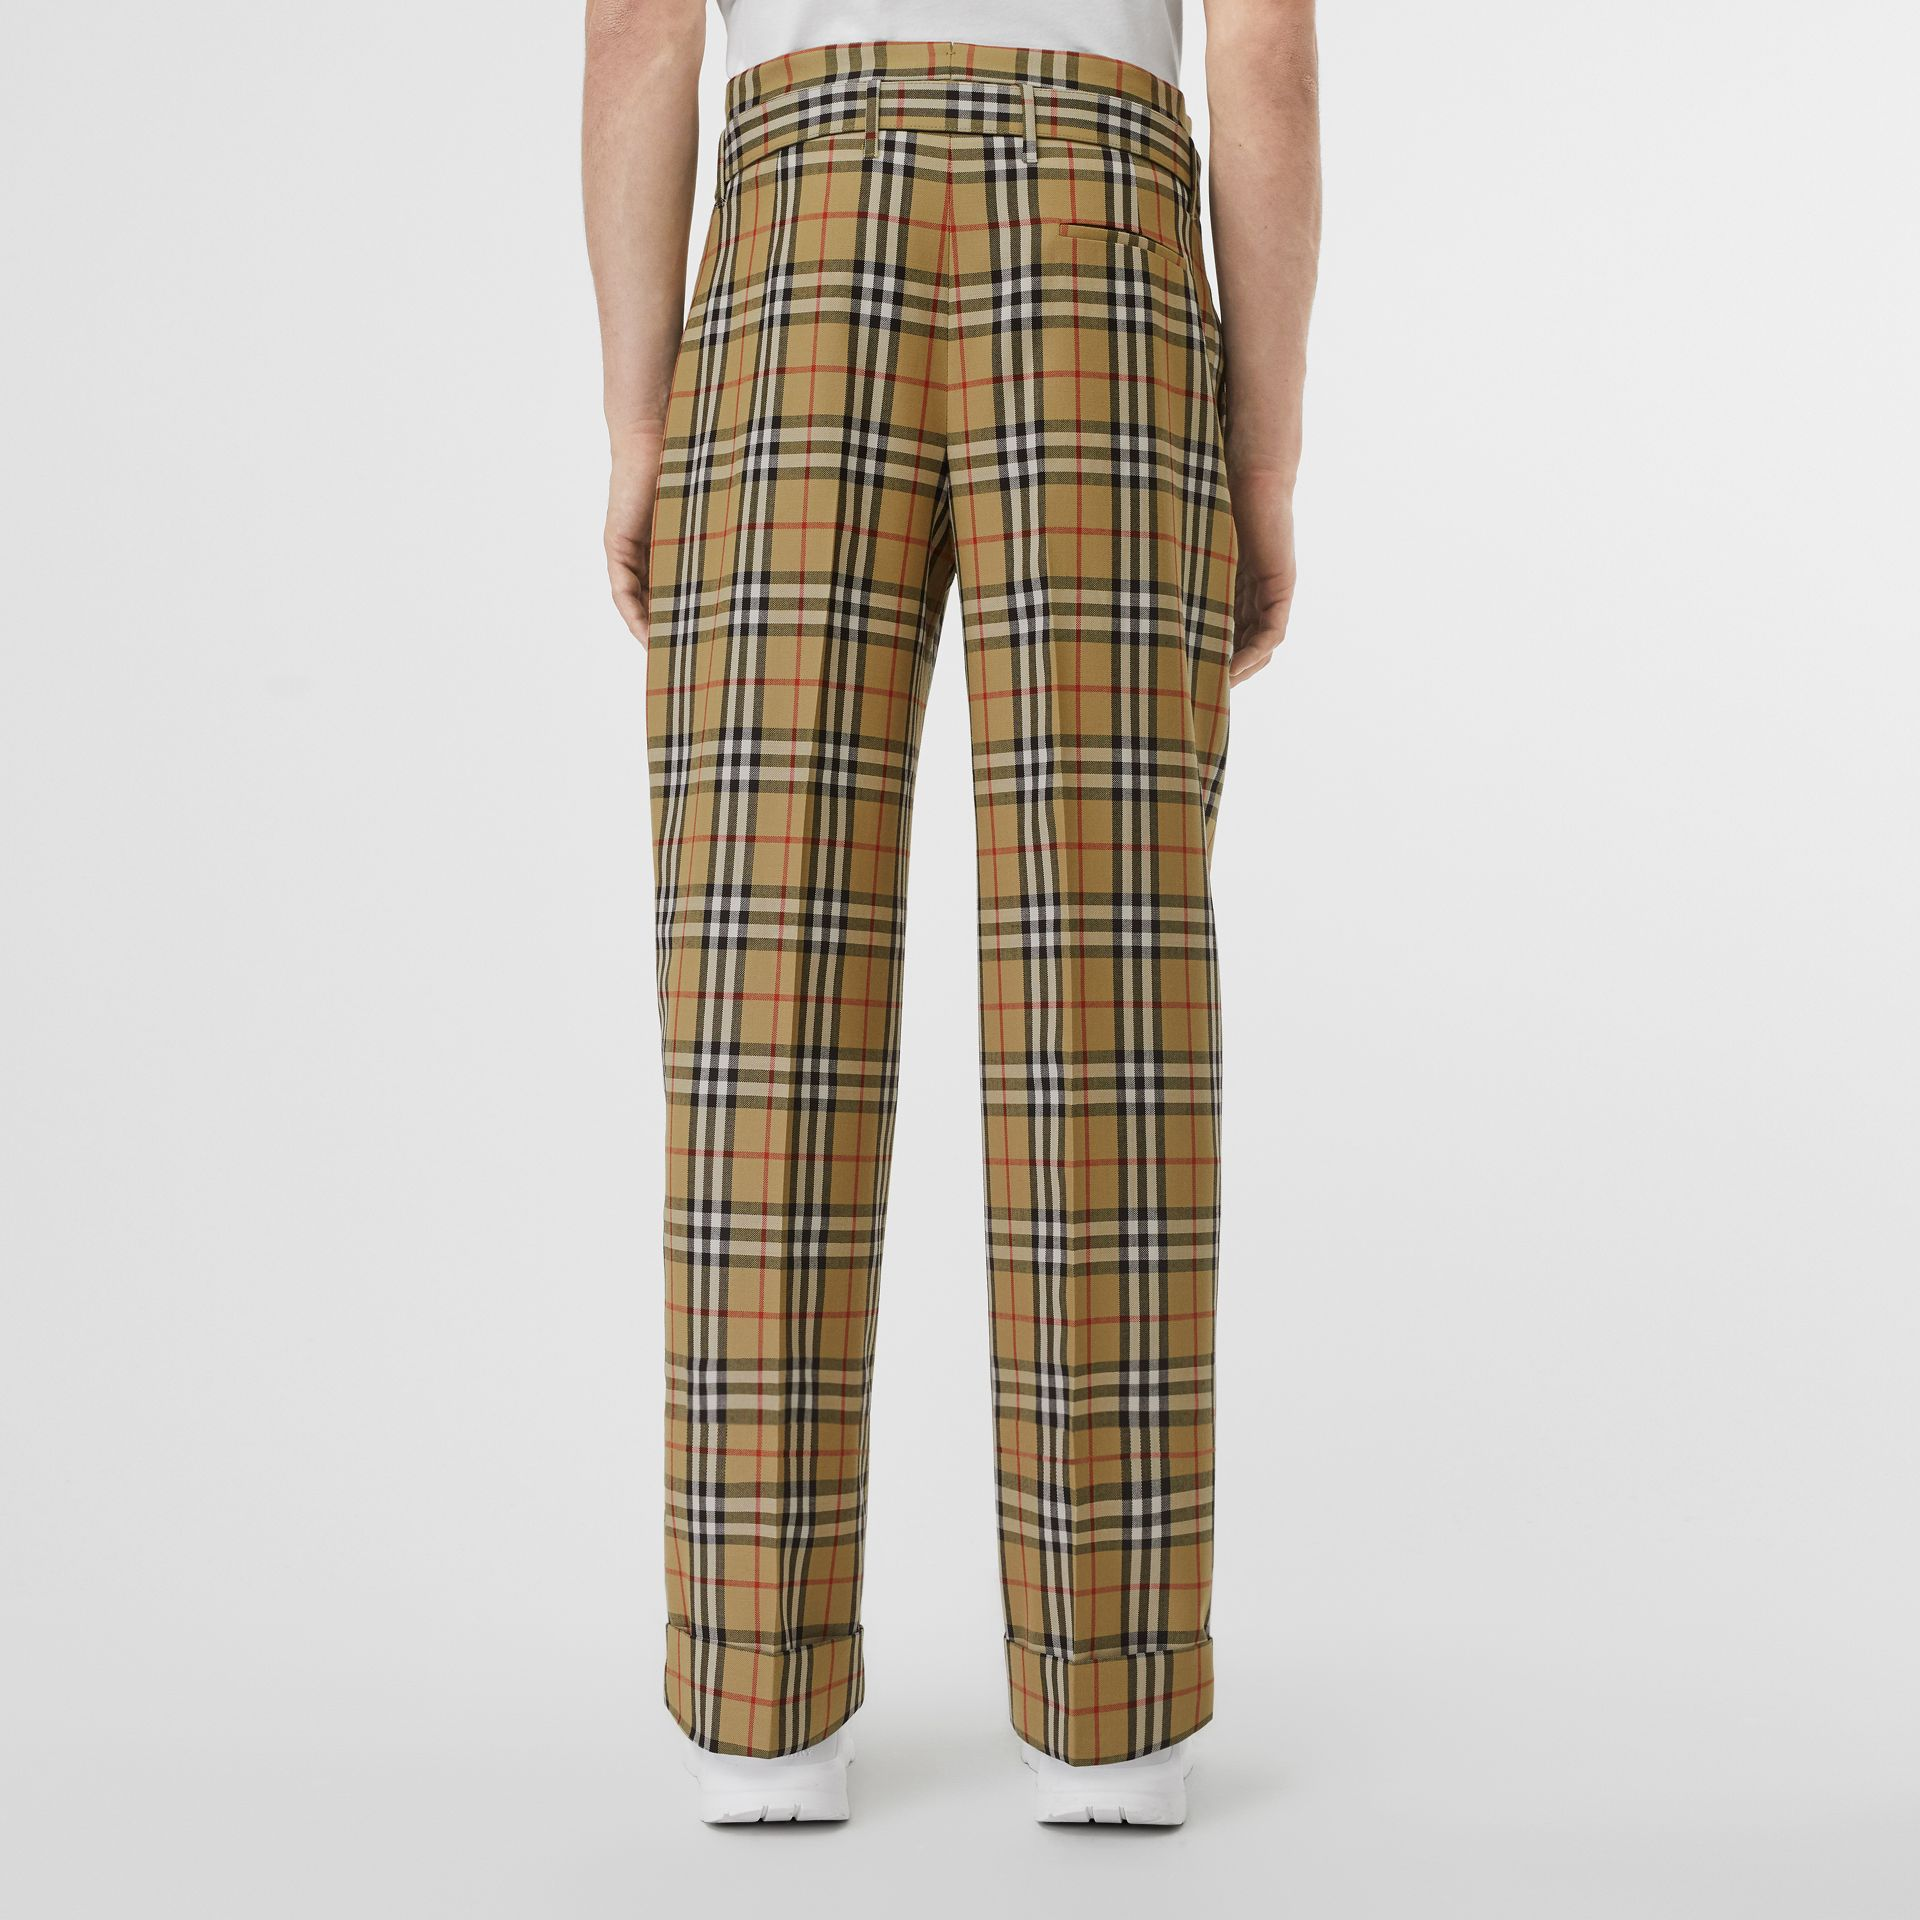 Pantalon taille haute en laine à motif Vintage check (Jaune Antique) | Burberry - photo de la galerie 2